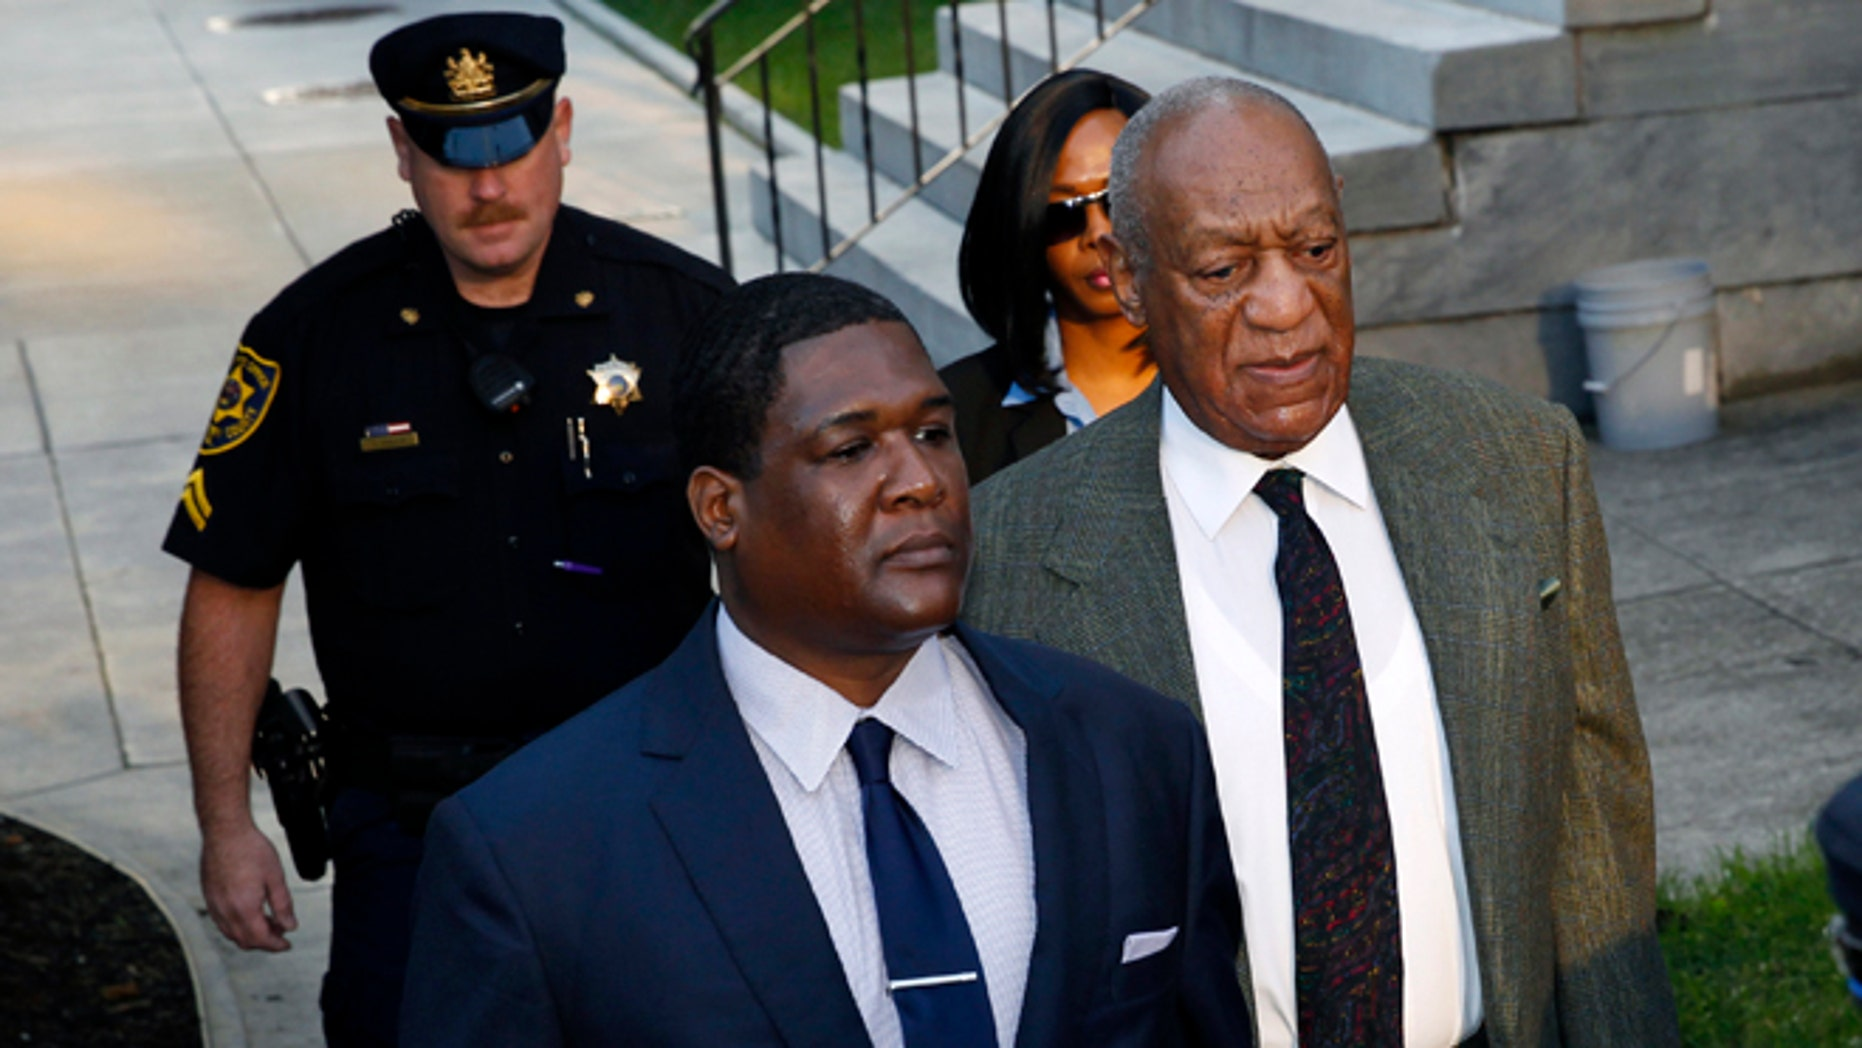 Bill Cosby, right, arrives for a hearing in his sexual assault case at the Montgomery County Courthouse on Wednesday, Nov. 2, 2016, in Norristown, Pa.